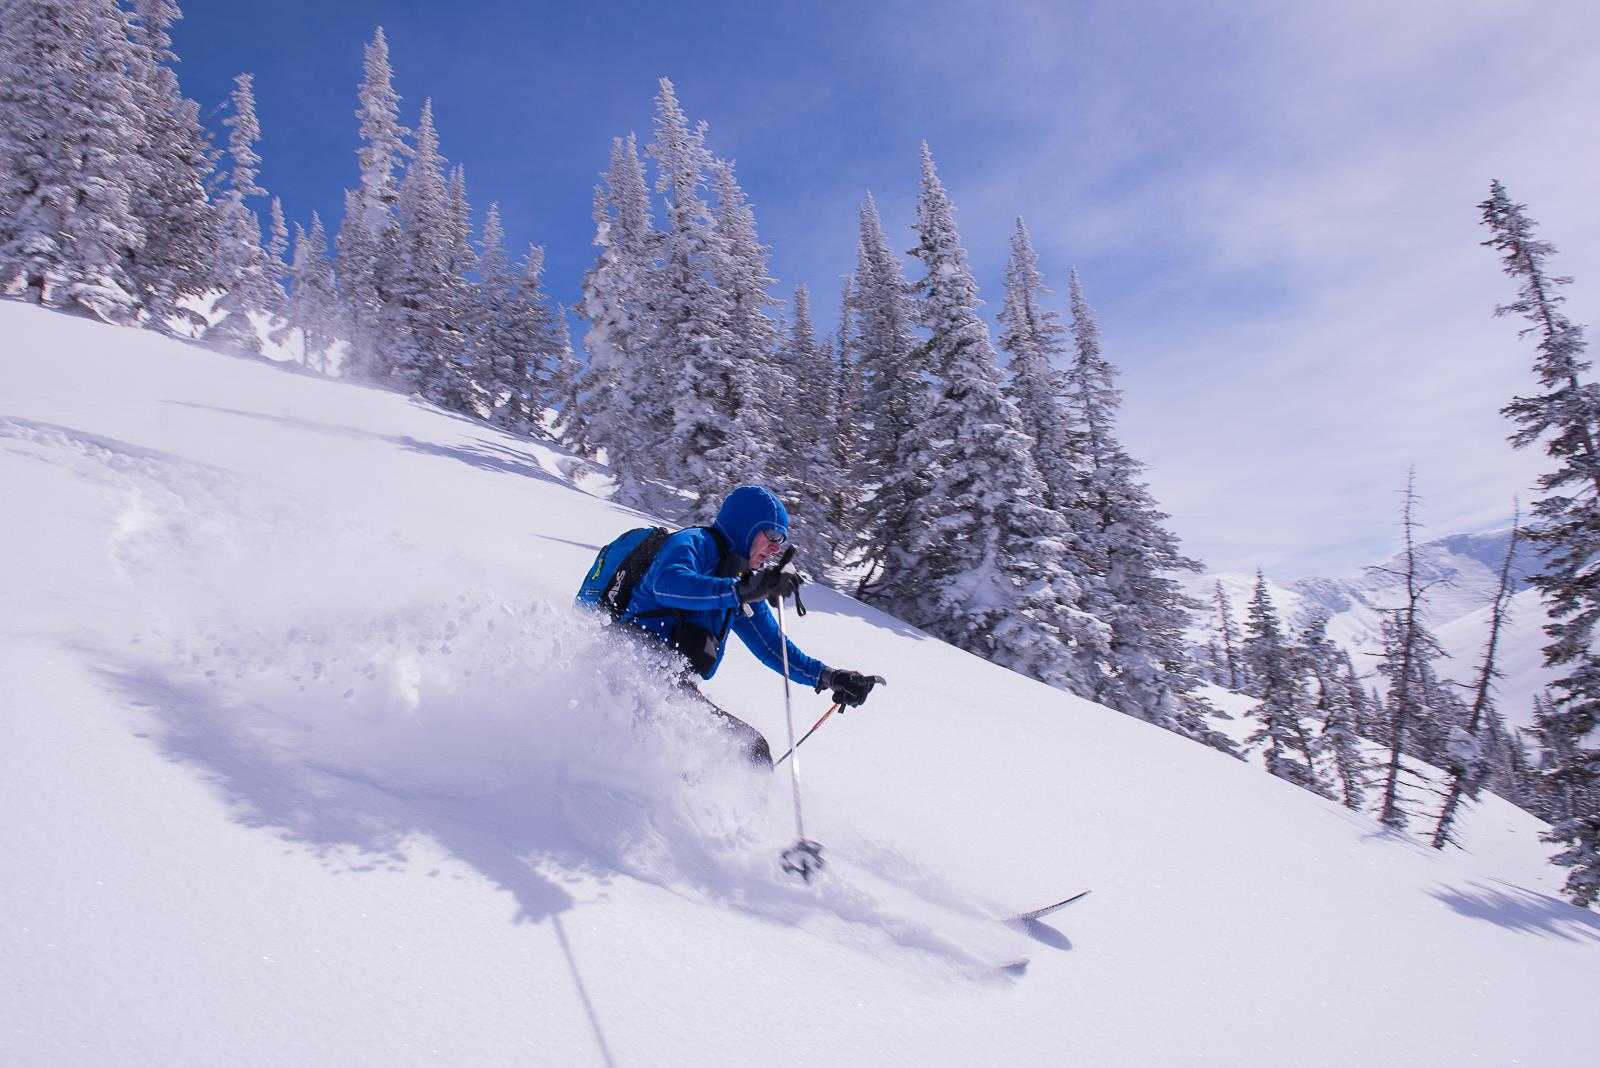 The Boreas Pullover, my go-to top for backcountry skiing.